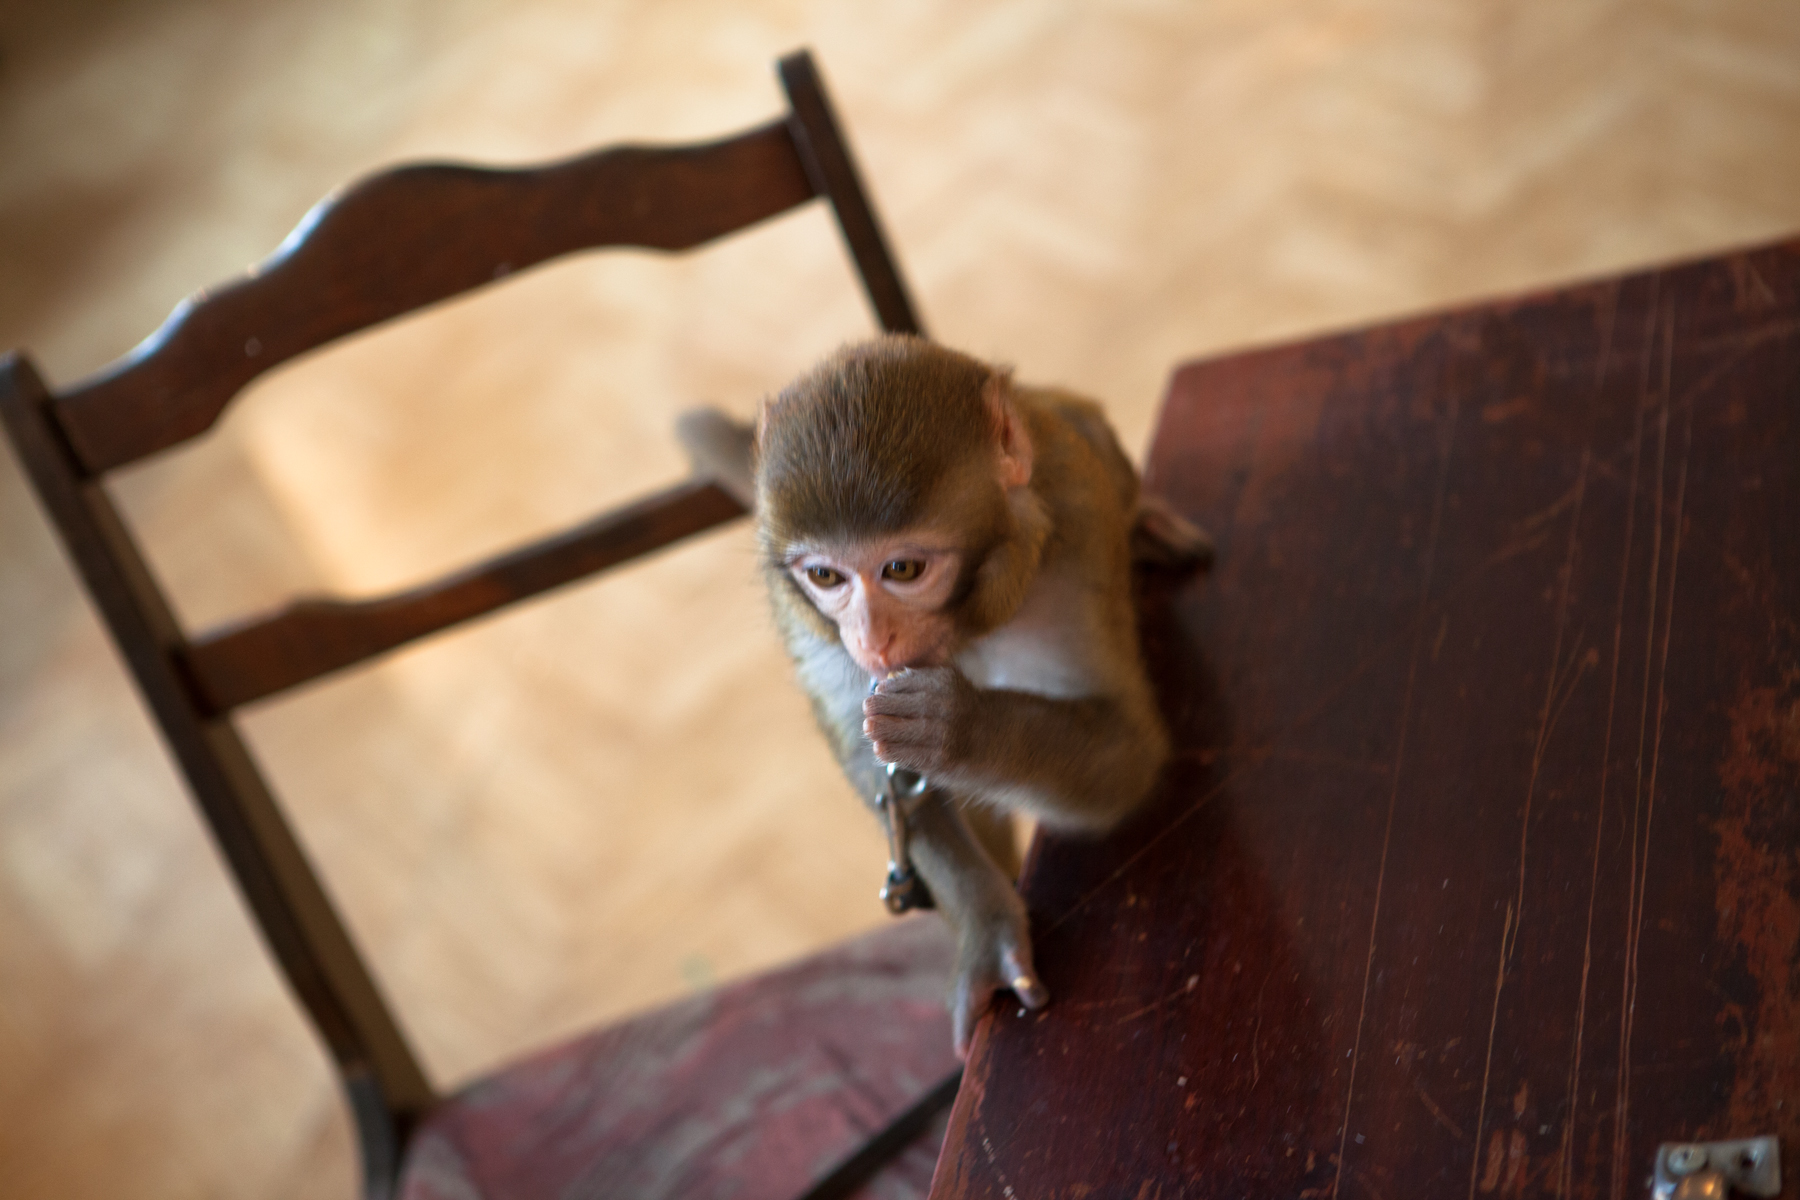 monkey, Animal, Table, Sitting, Primate, HQ Photo